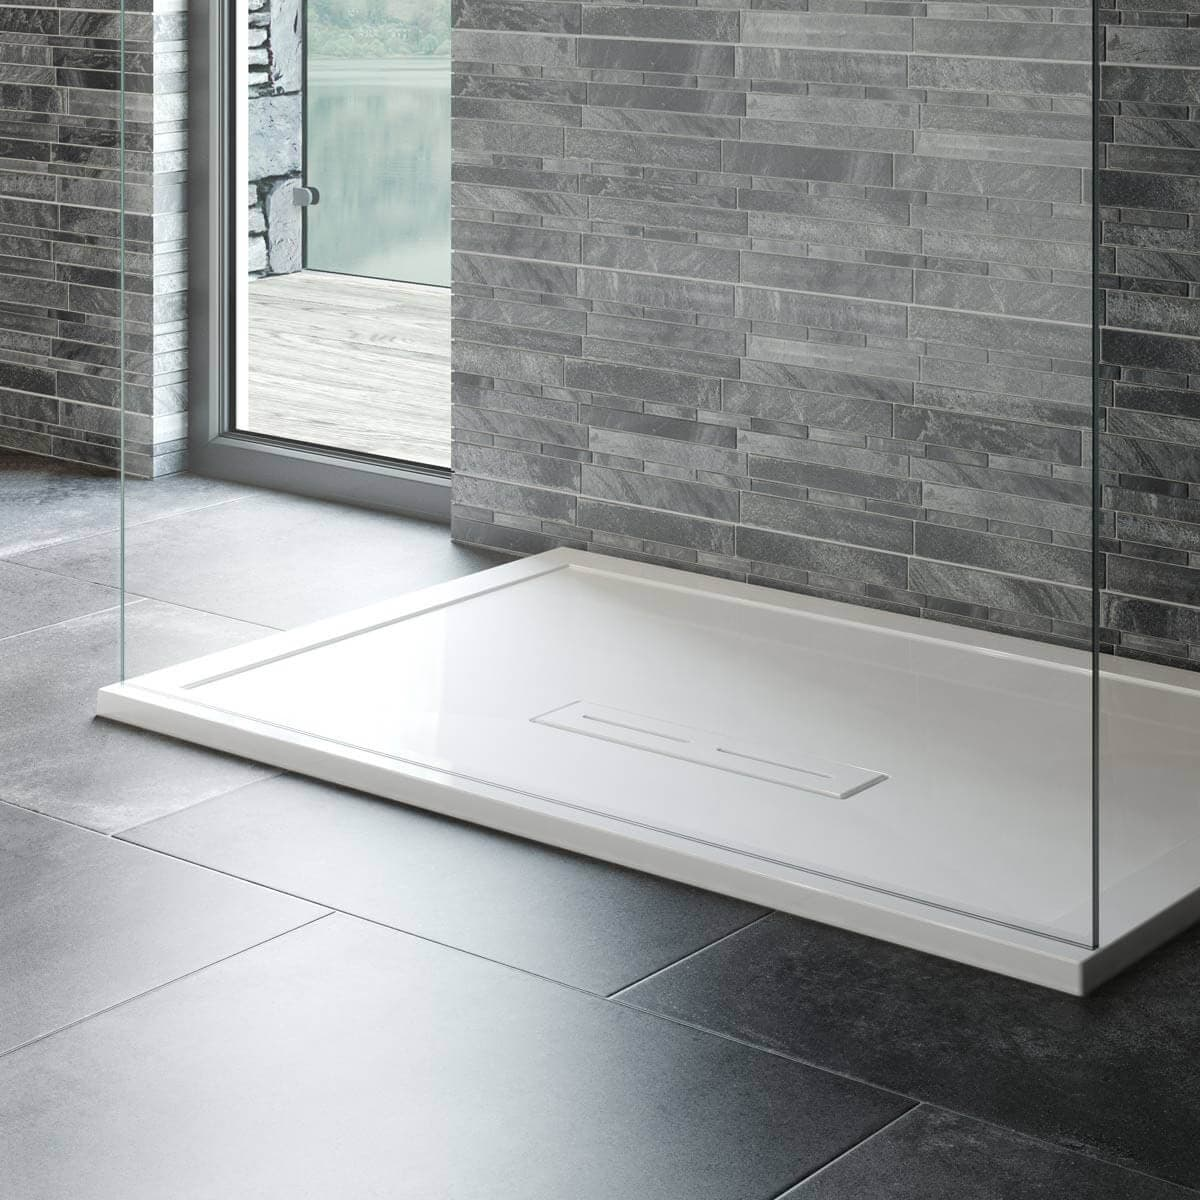 kudos connect2 rectangular shower tray c2t10080t. Black Bedroom Furniture Sets. Home Design Ideas